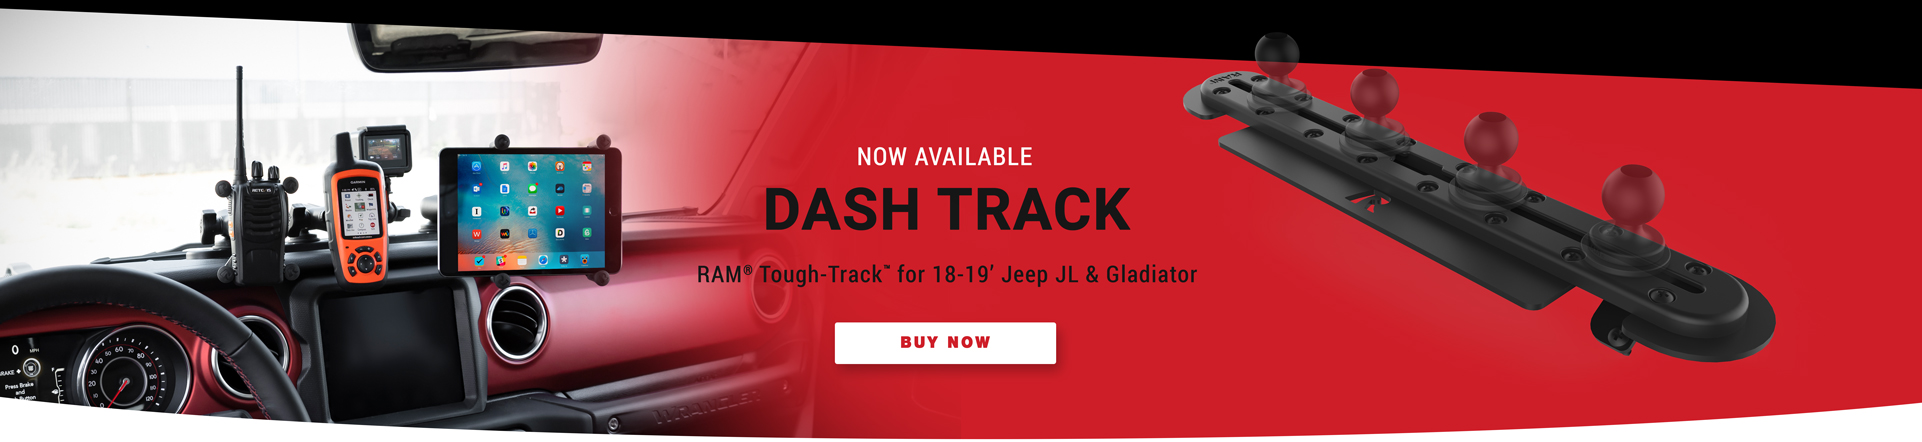 Now Available: Dash Track